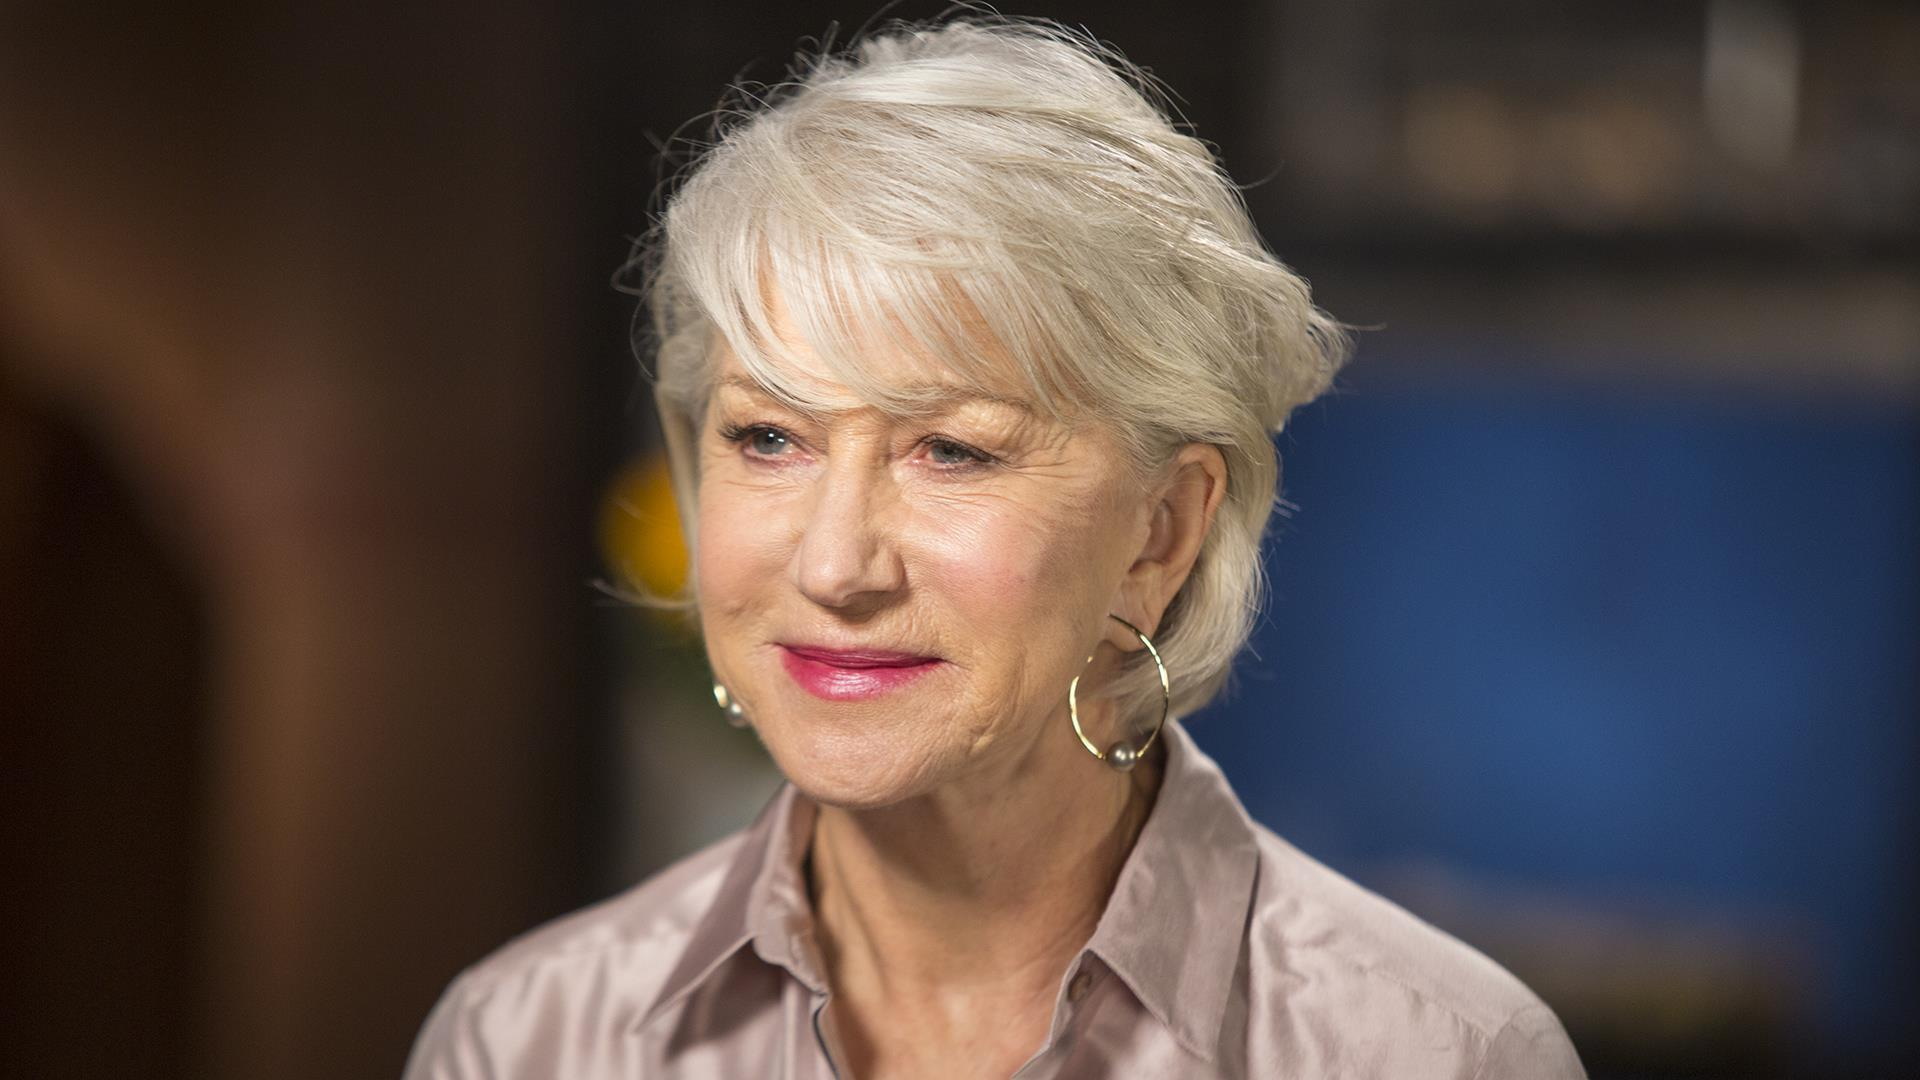 Helen Mirren Theres Nothing Like That Evening I Won An Oscar For